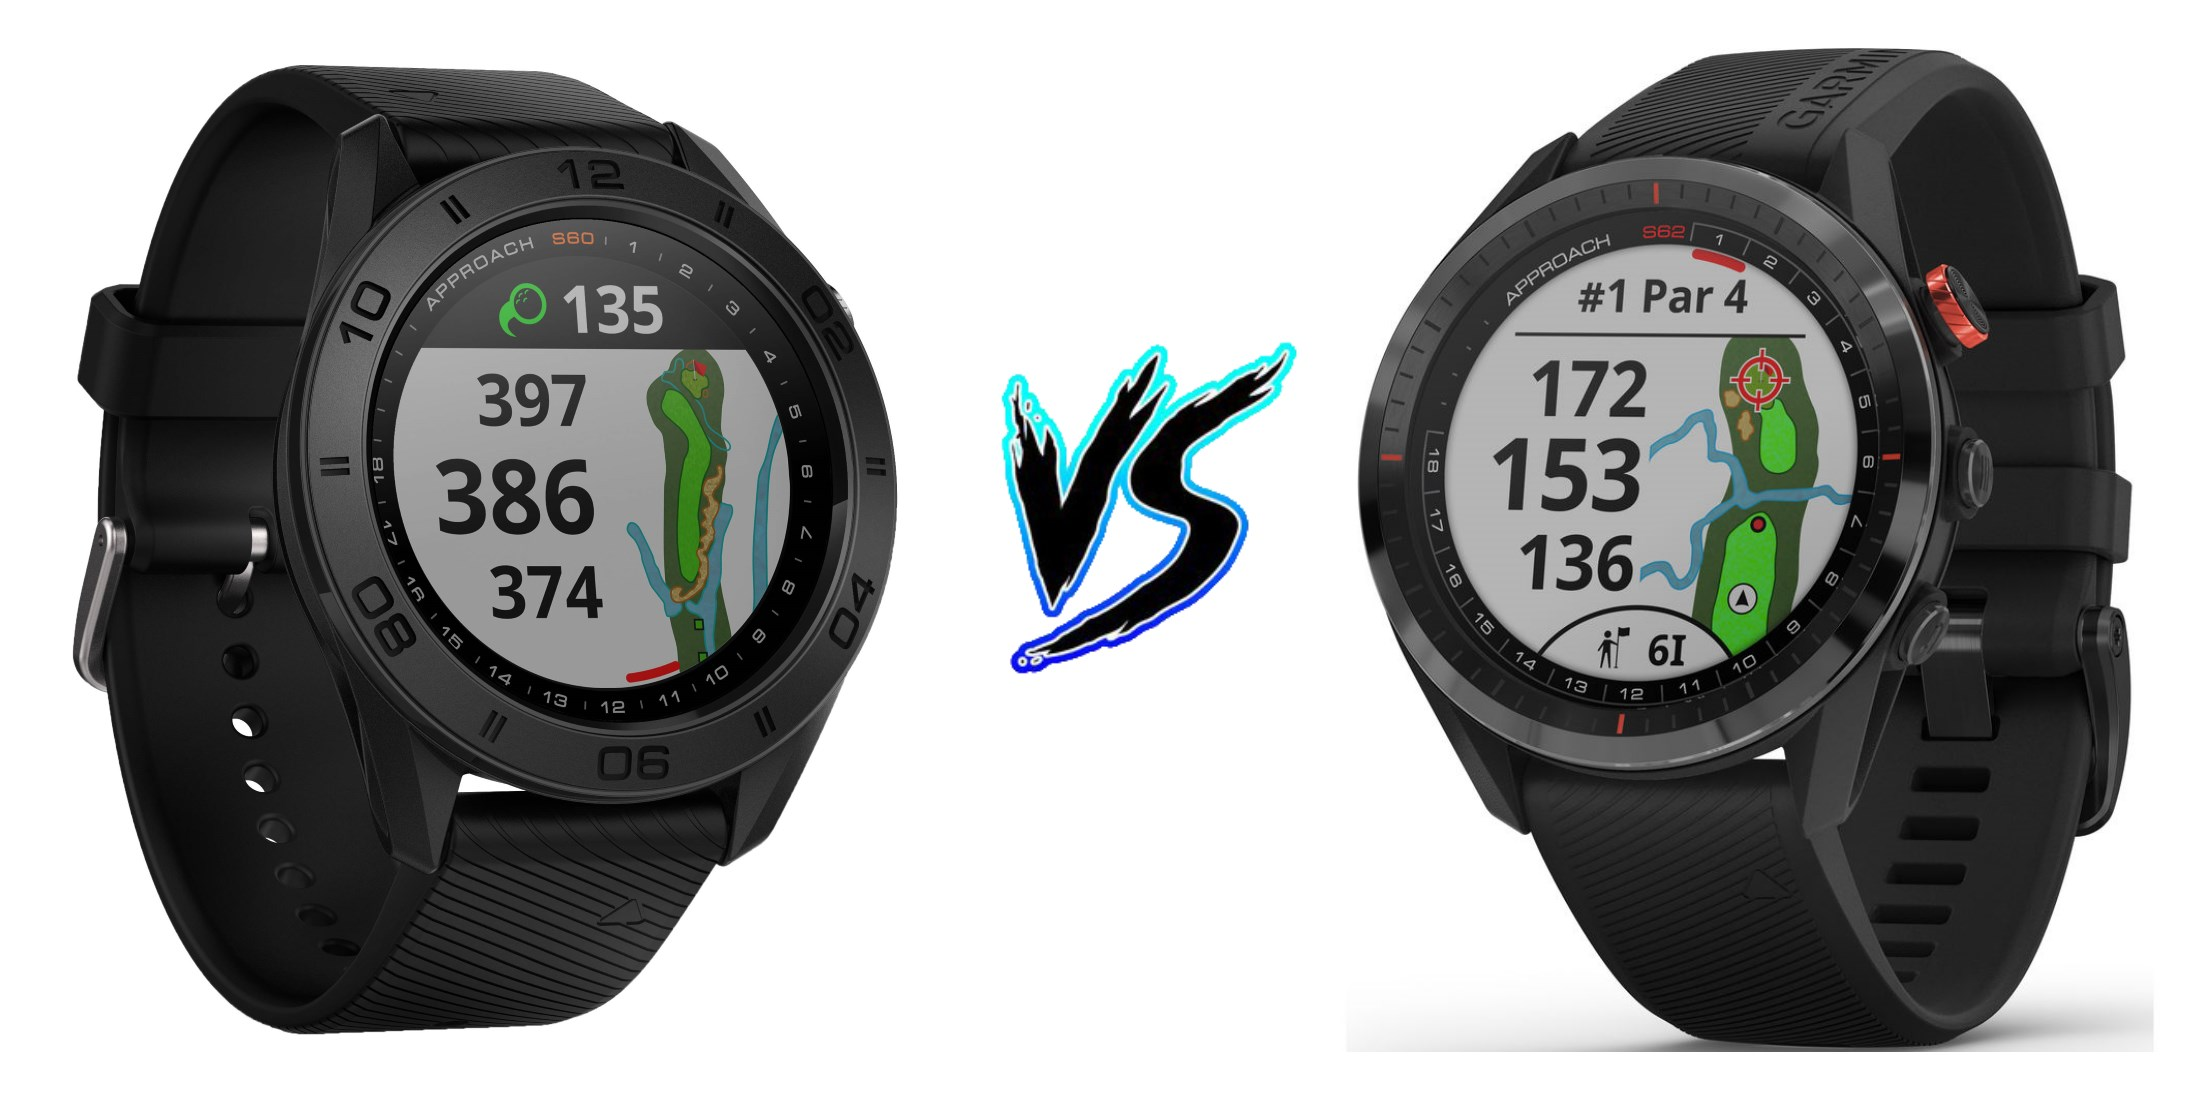 Garmin Approach S60 vs Garmin Approach S62 – Comparison